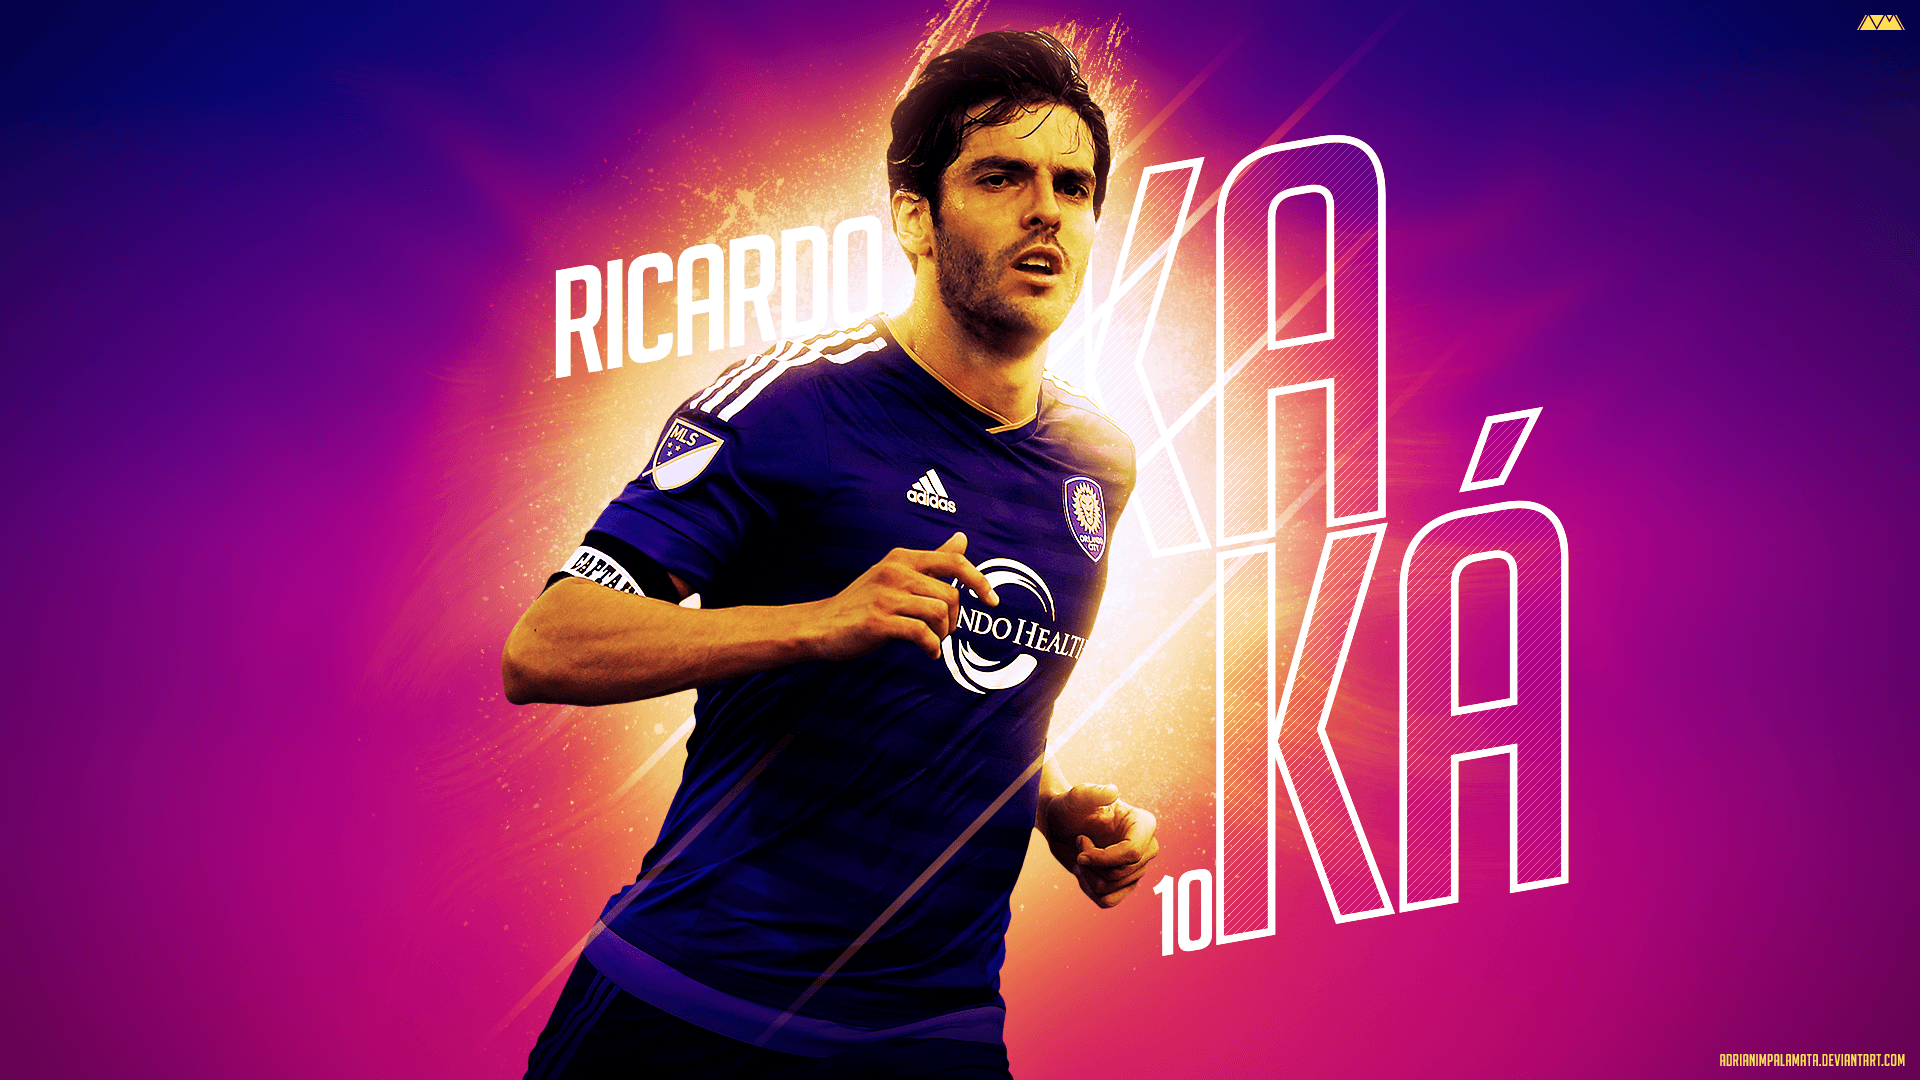 Kaka Wallpapers and Background Images   stmednet 1920x1080